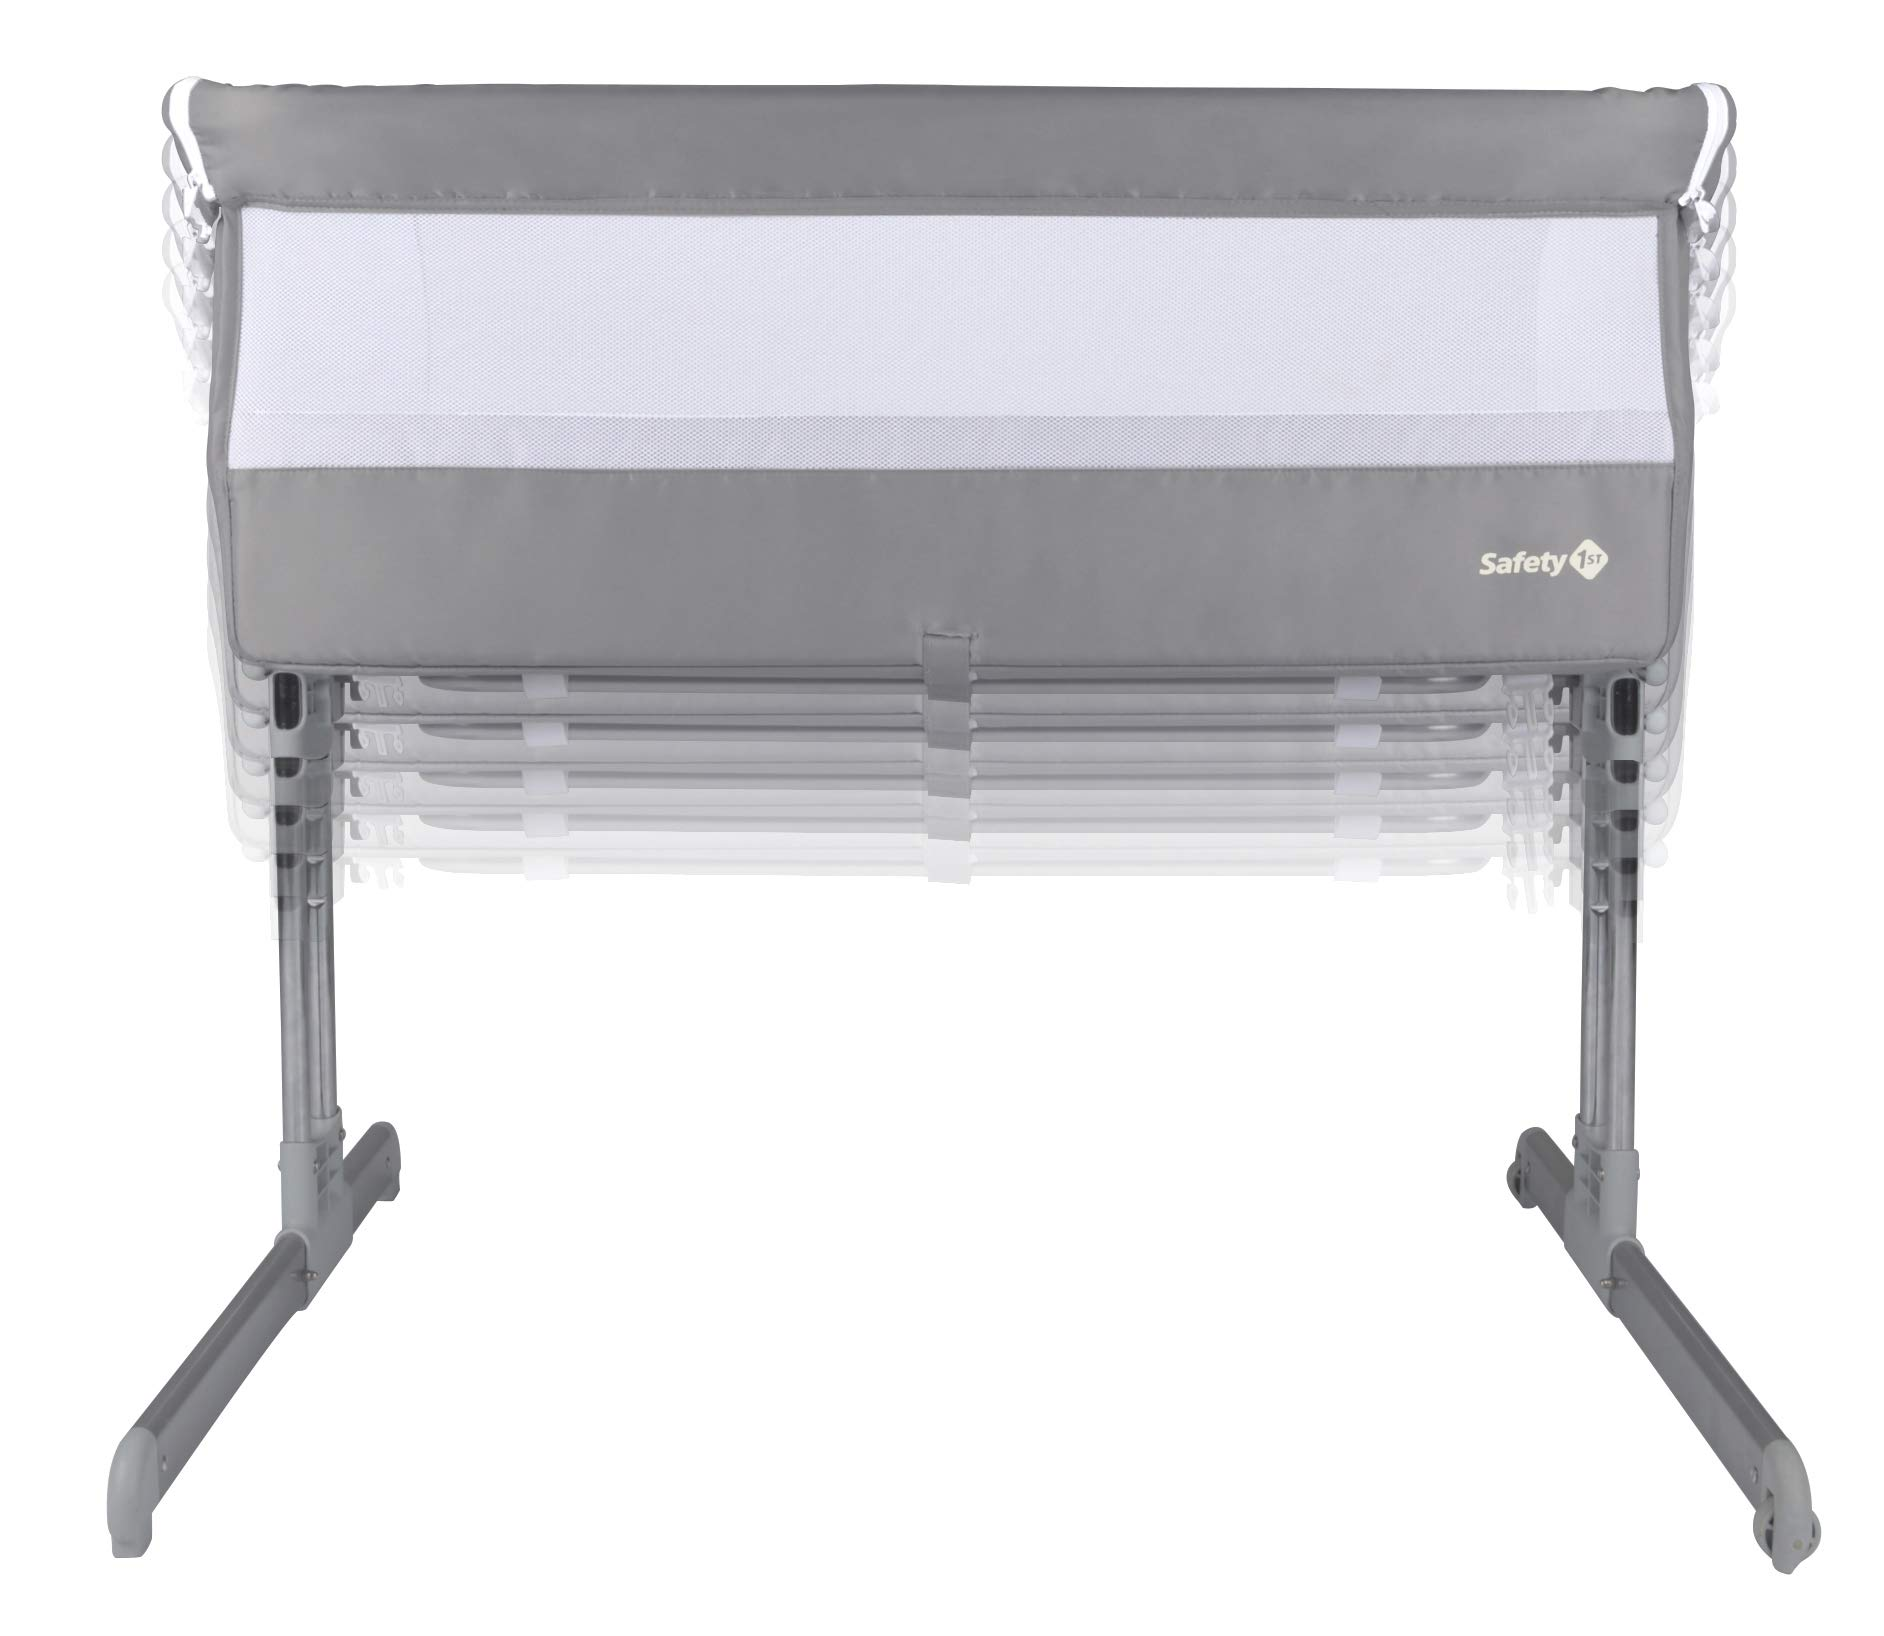 Safety 1st Calidoo Cot Cot Cot Cot Cot Bed Cot Cot Cot Cot with Recliner and 7 Heights Travel Cot for Newborn - Warm Grey Safety 1st Crib side bed for newborns with opening edge to be attached to the parents' bed and sleep next to the child in safety Height adjustable to 7 levels and can be reclined to an anti-backflow position Adjustable feet to be attached to beds with storage box 2